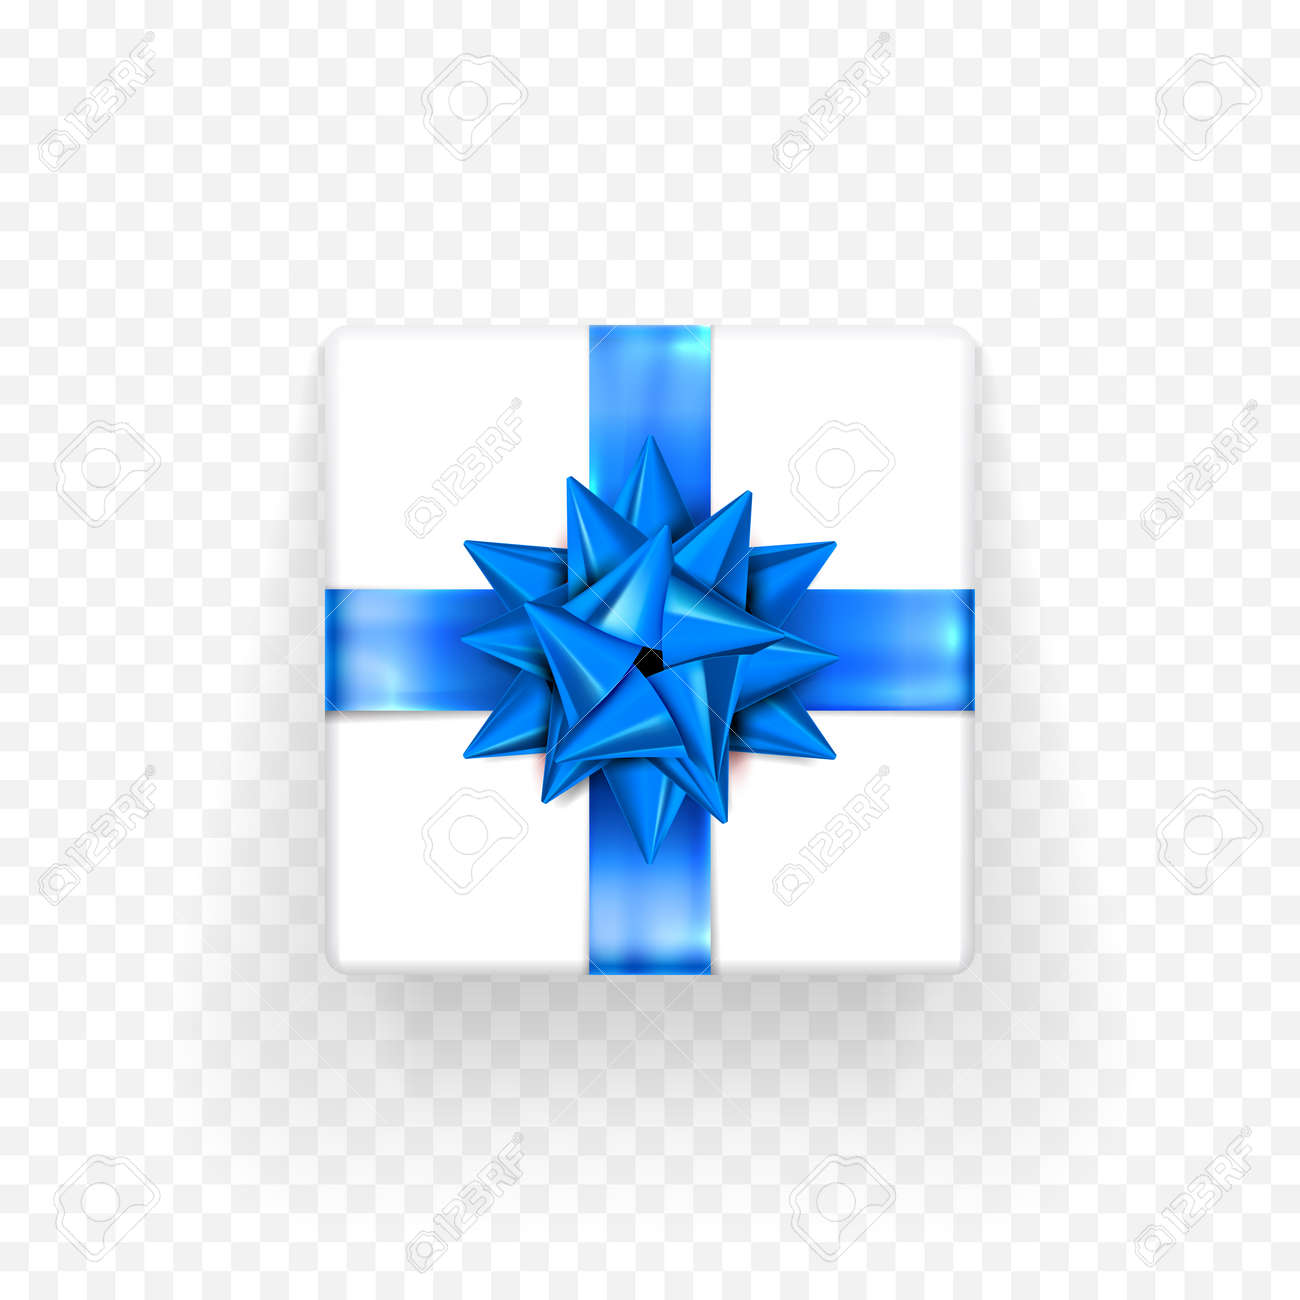 gift box with blue bow ribbon design template for birthday new year or christmas holiday